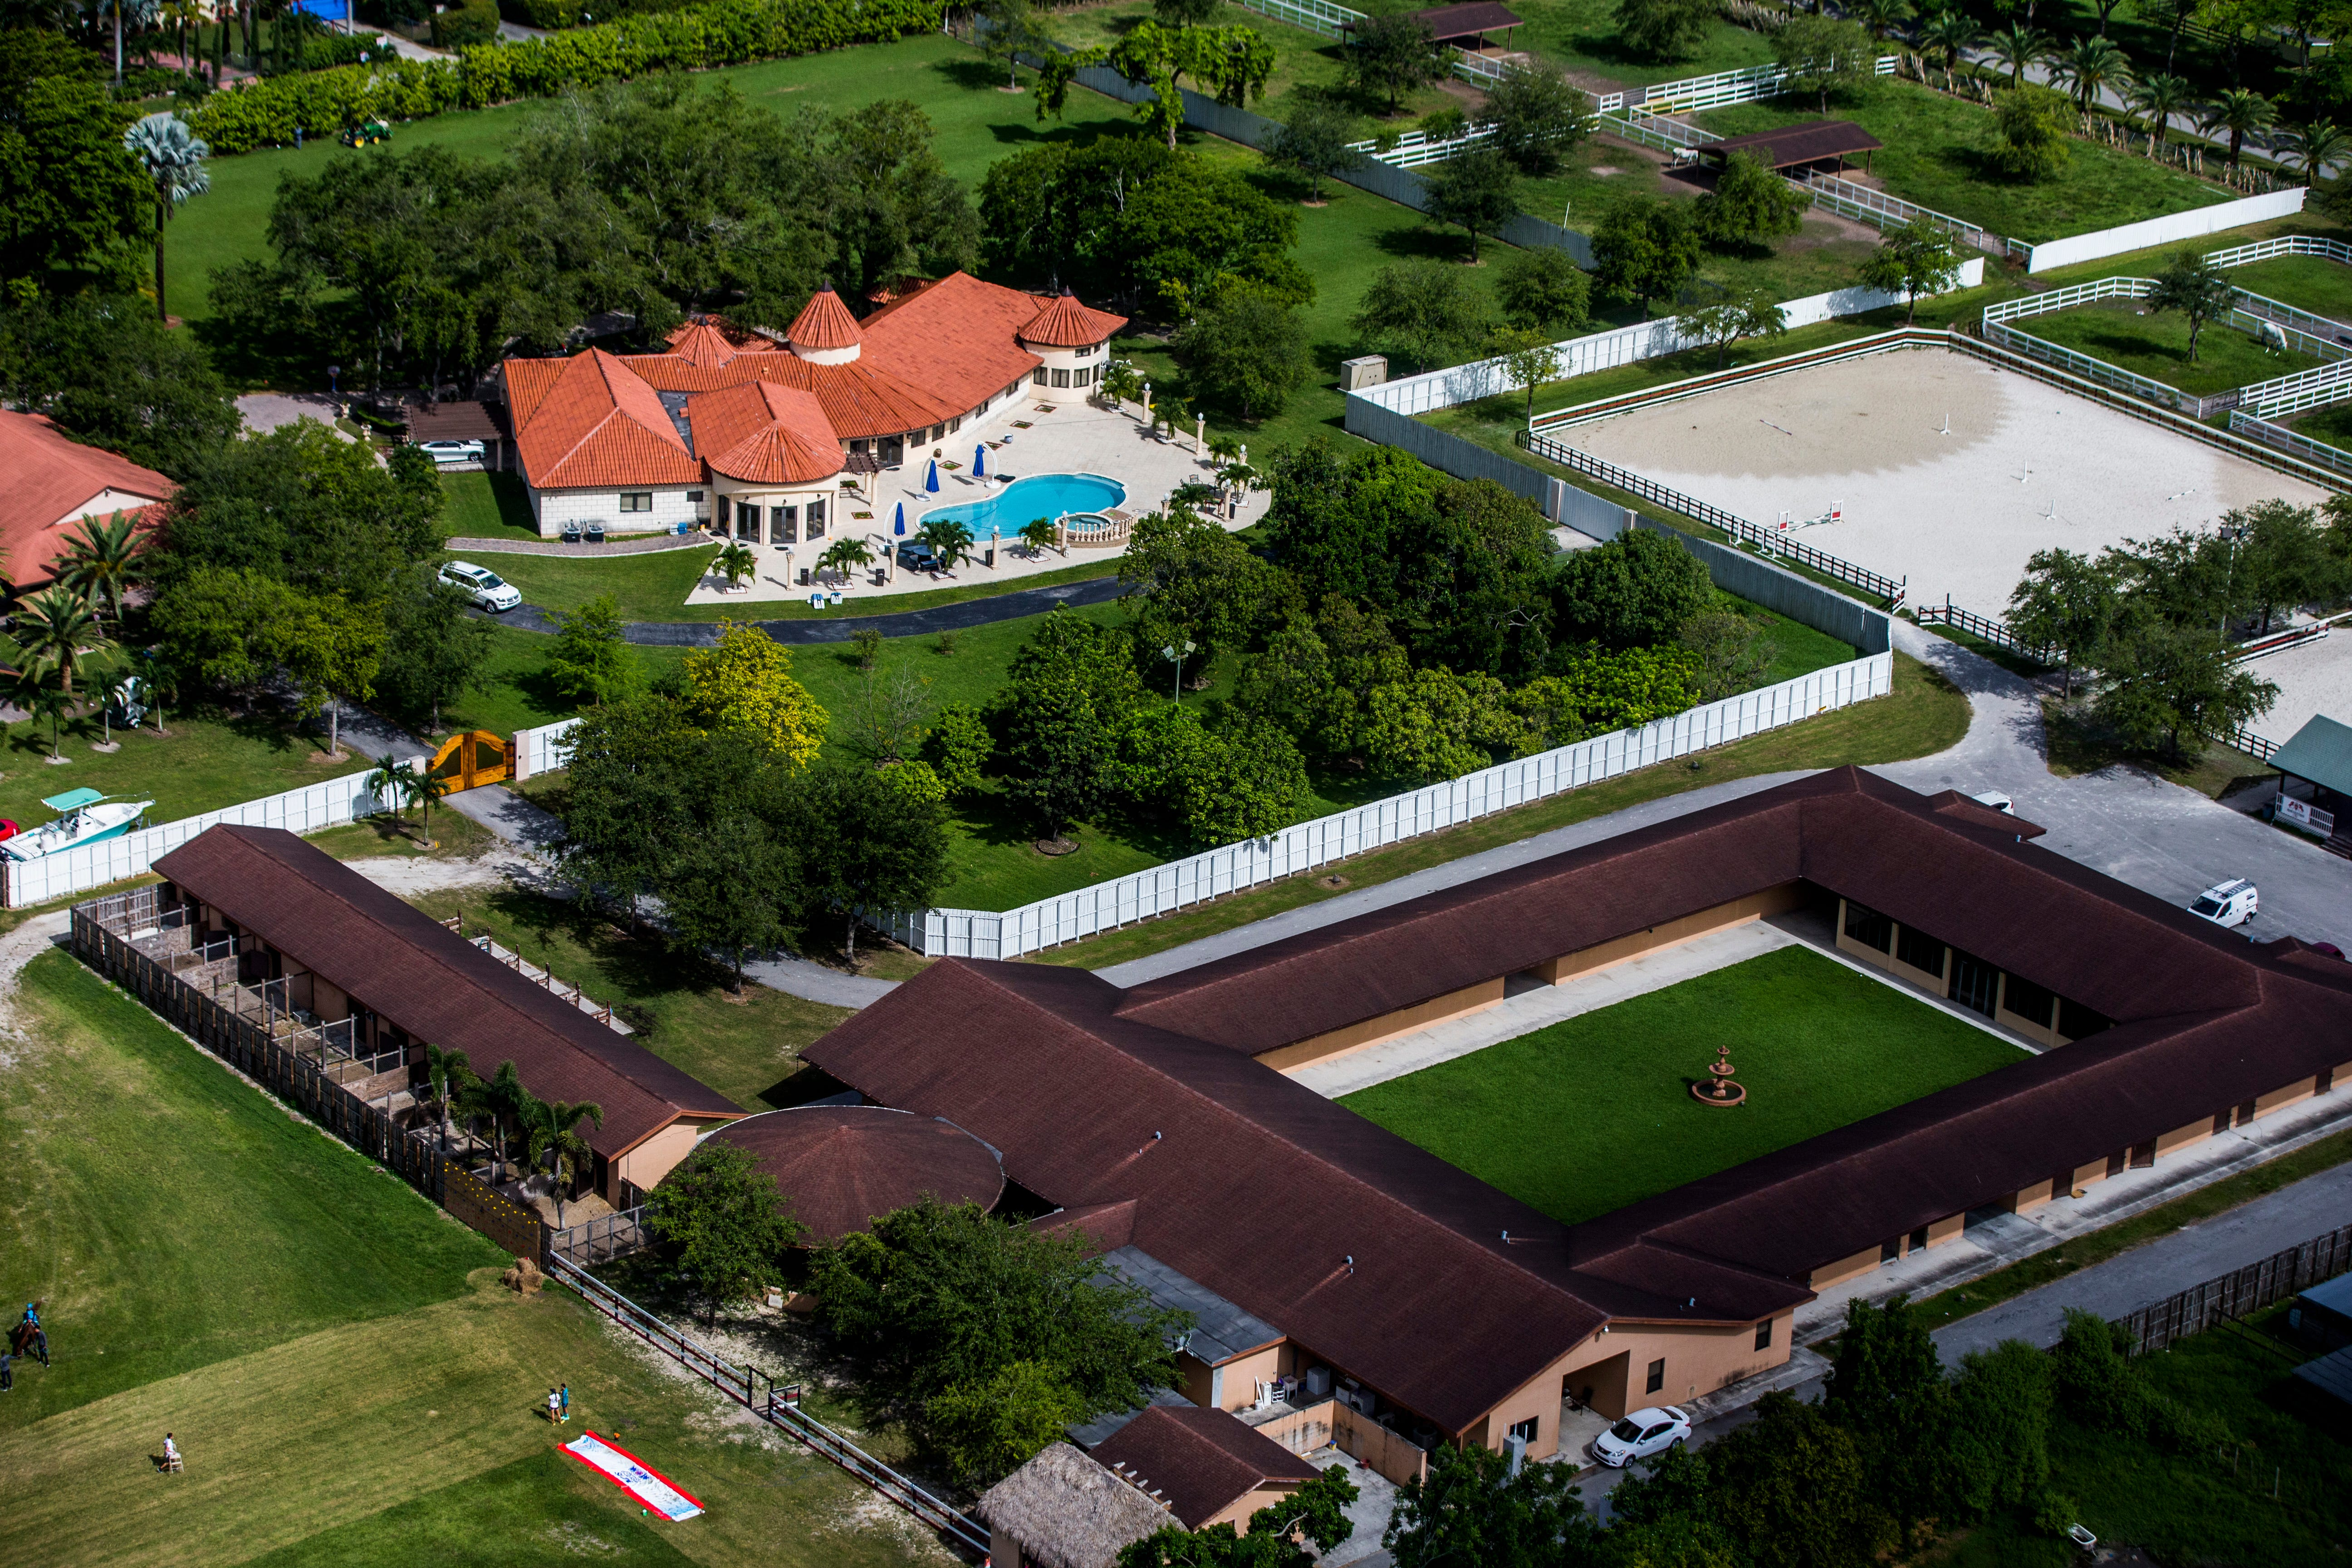 The sprawling country estate in Miami-Dade purchased in 2014 by Ismael Labrador, founder of a cosmetic surgery business that has experienced the highest number of patient deaths in Florida since 2013.